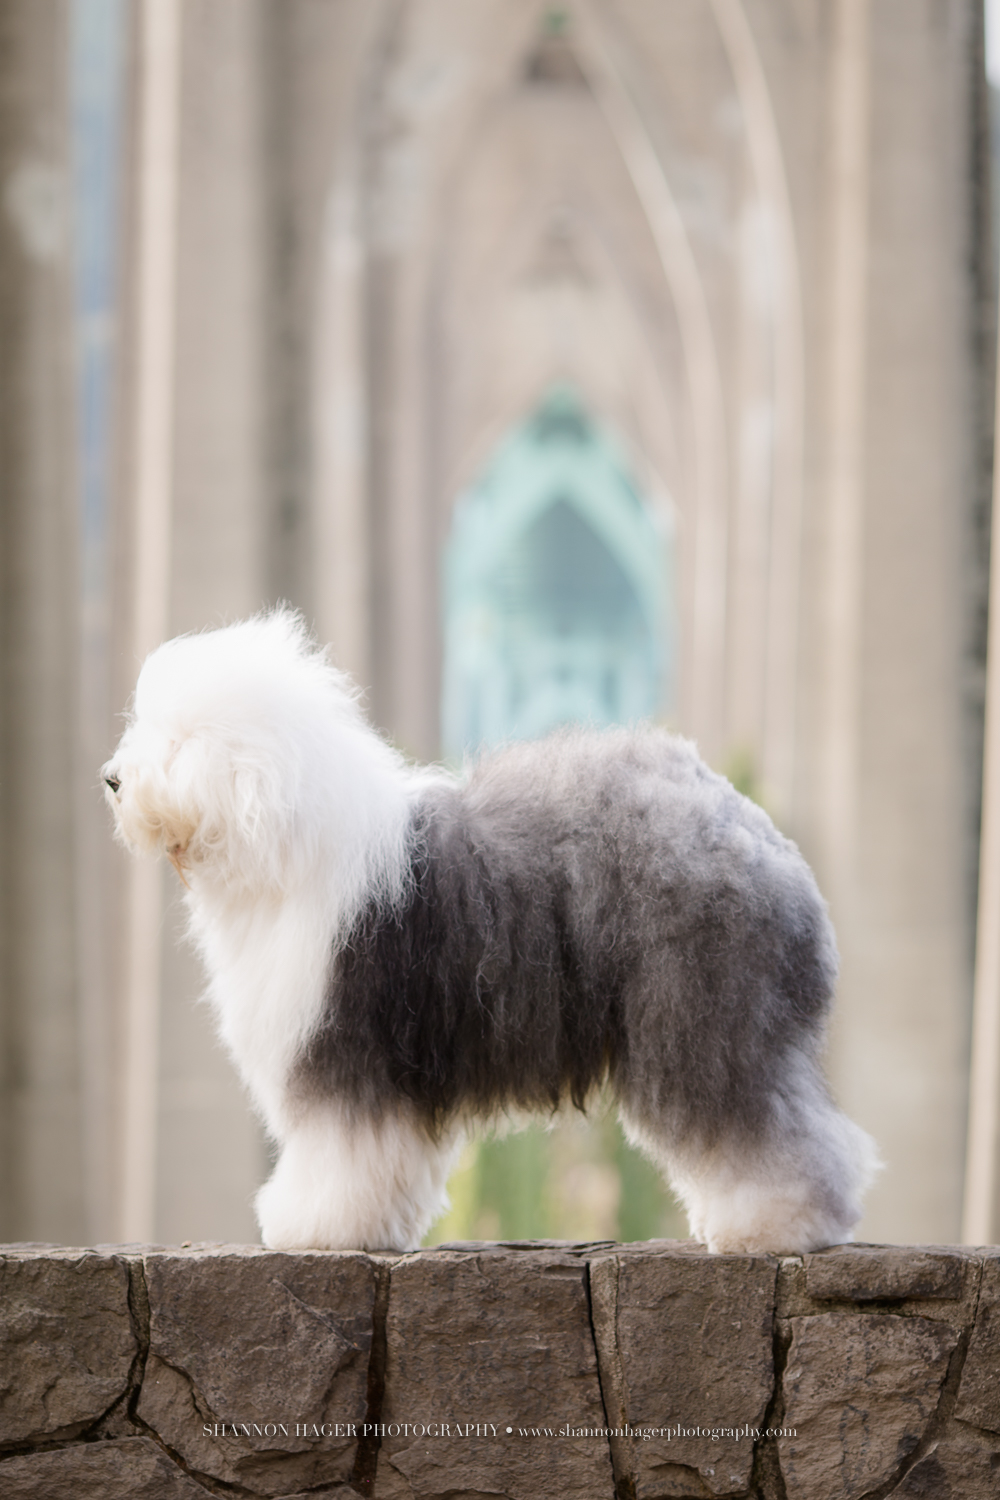 snowdowne oes, old english sheepdog, champion showdog, portland, oregon